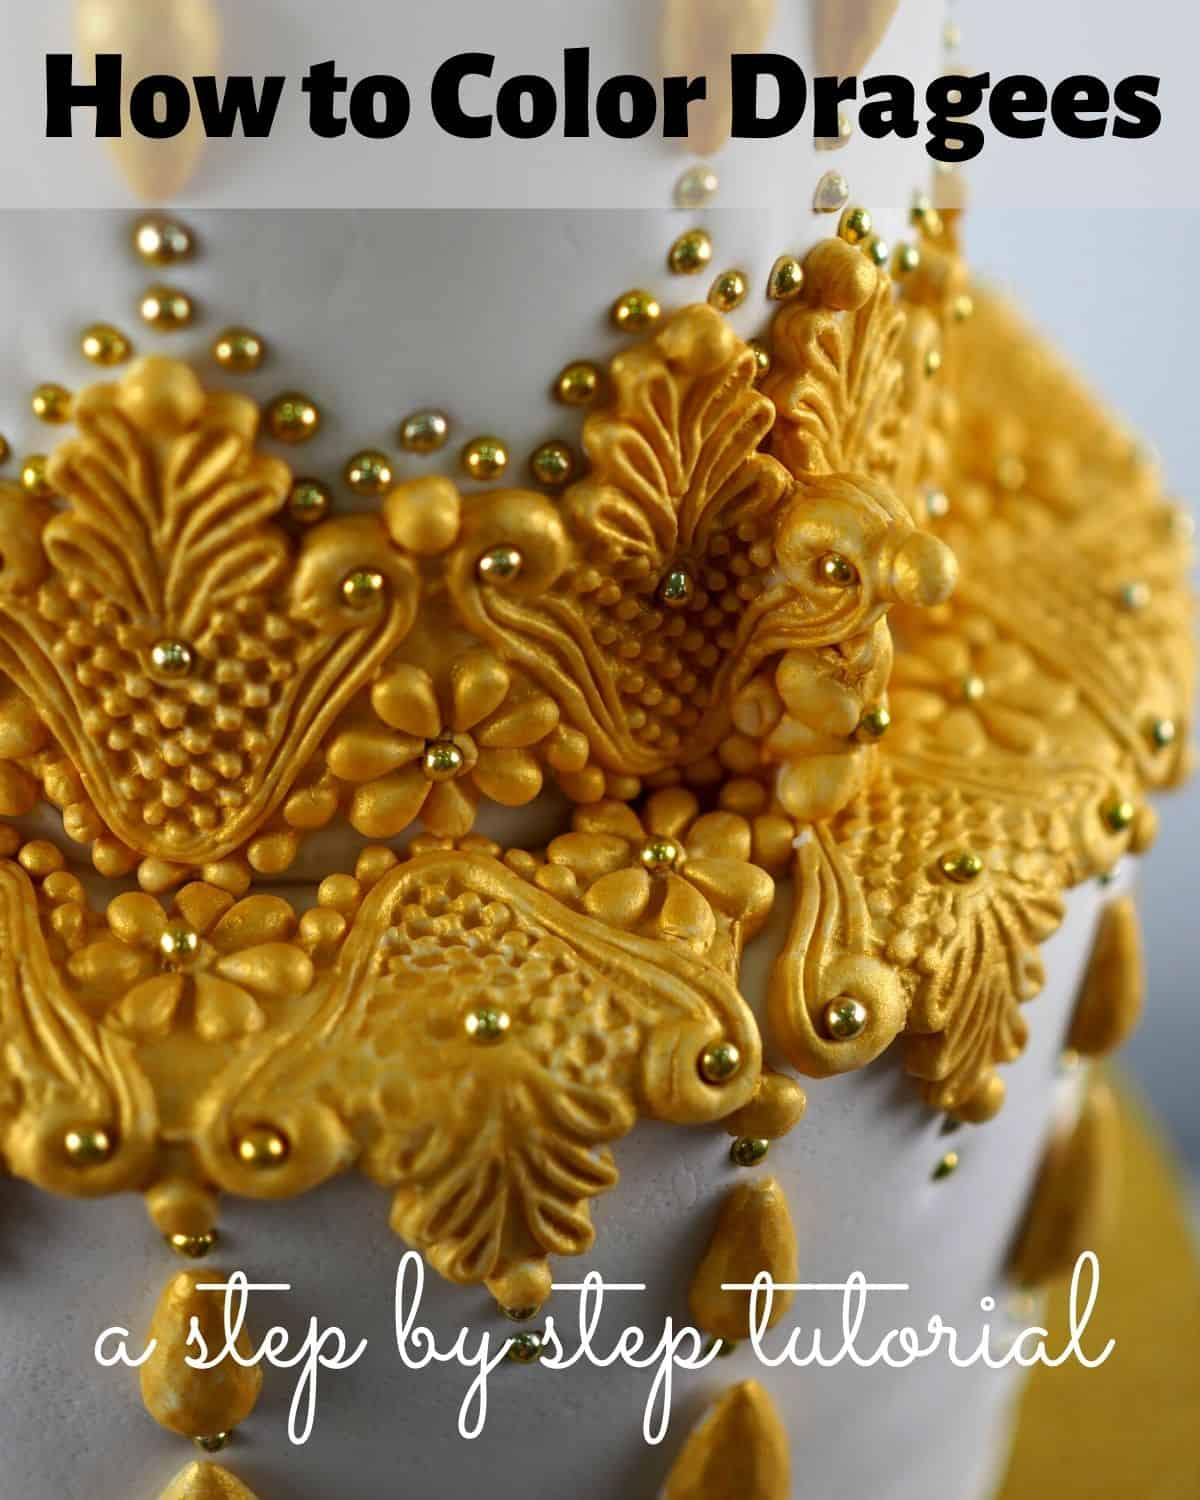 A white cake decorated with gold painted molded fondant and gold dragees